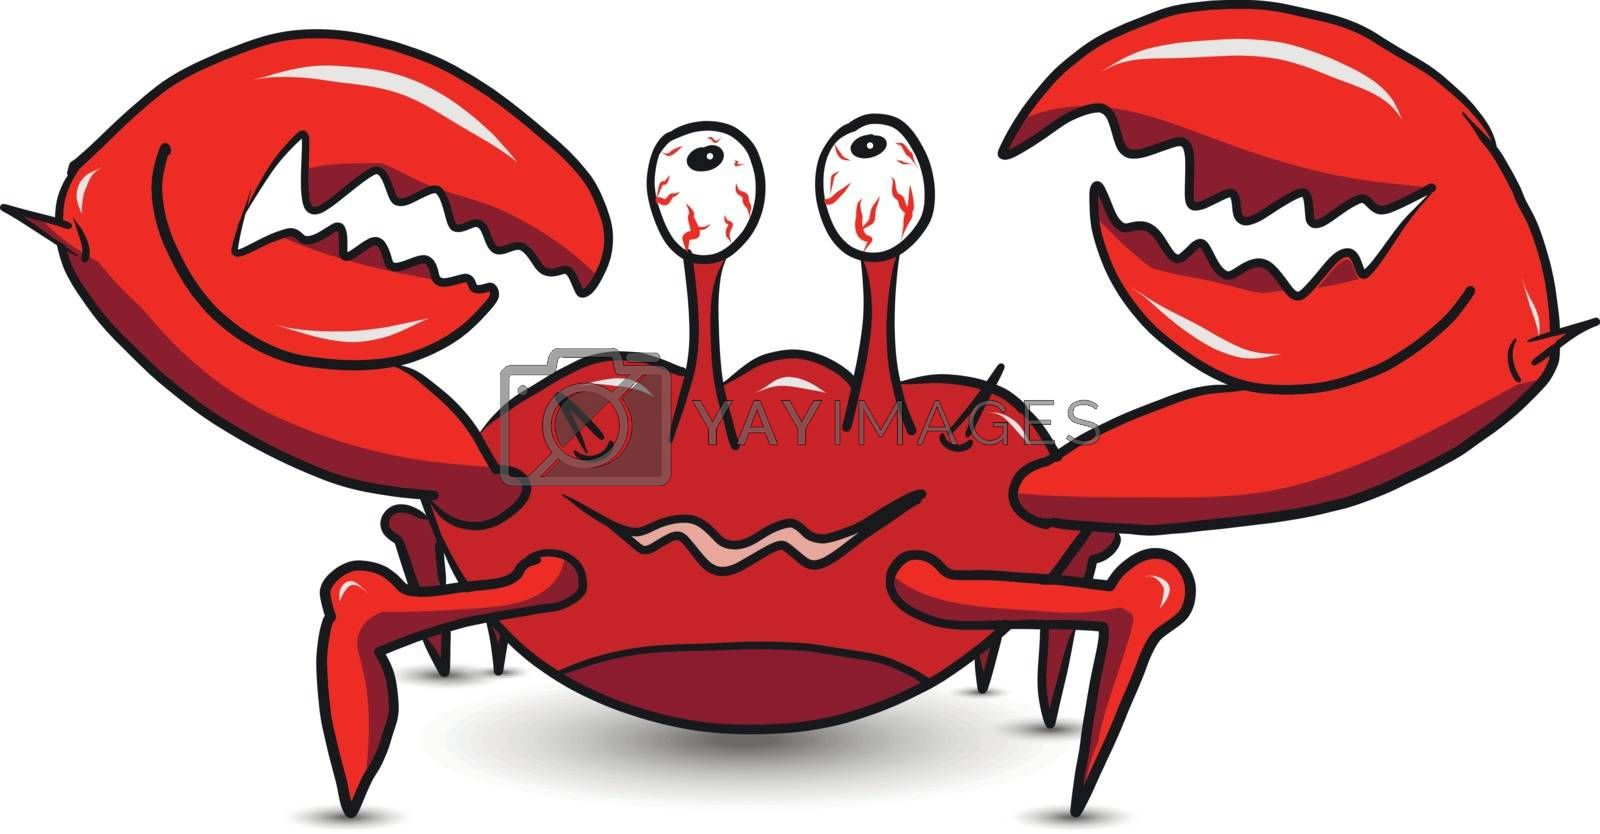 Illustration of a Happy Cartoon Red Crab